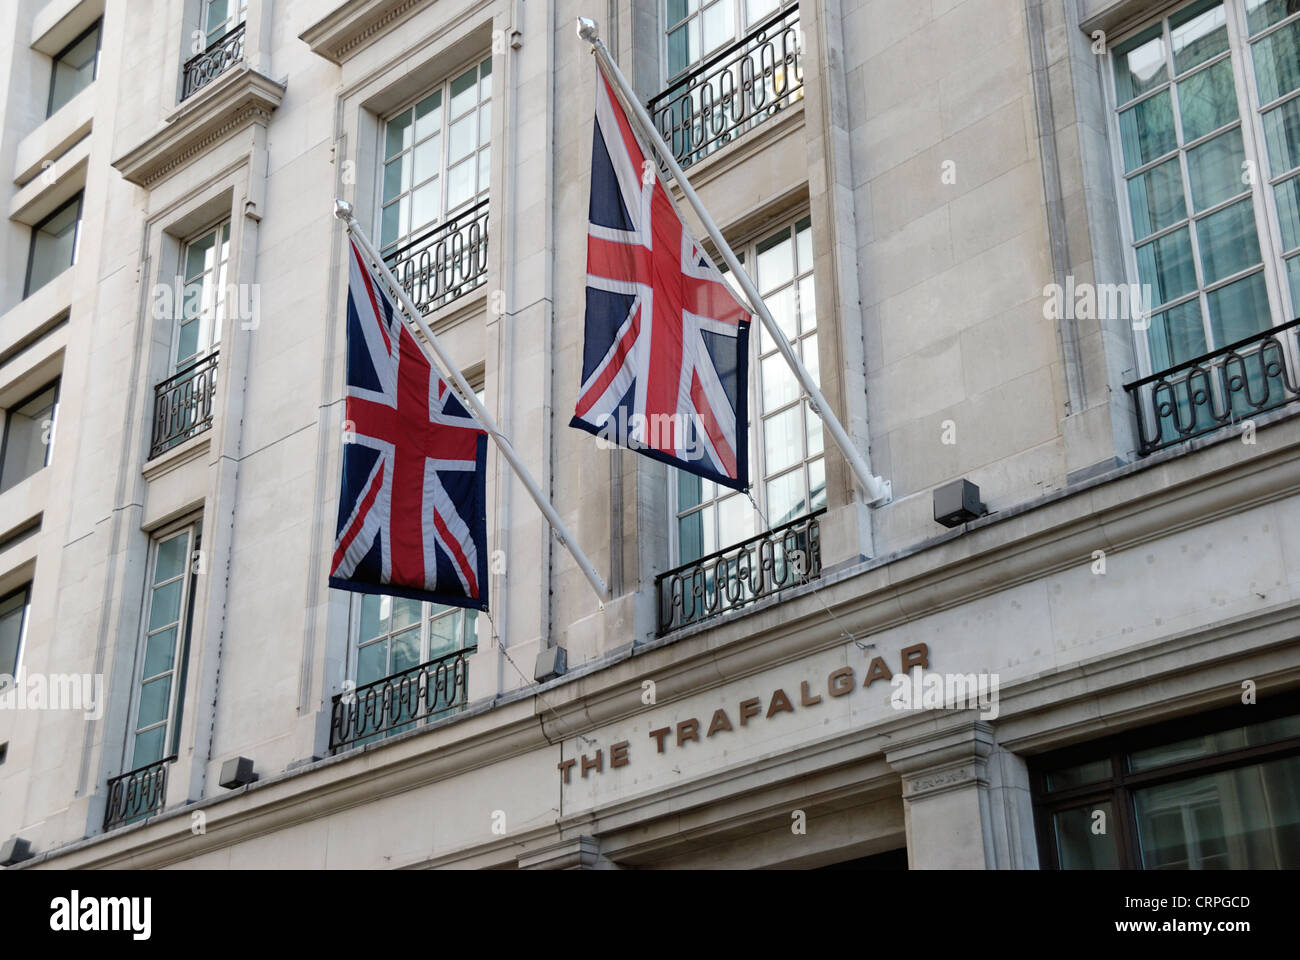 Union flags outside The Trafalgar Hotel on the south side of Trafalgar Square. - Stock Image